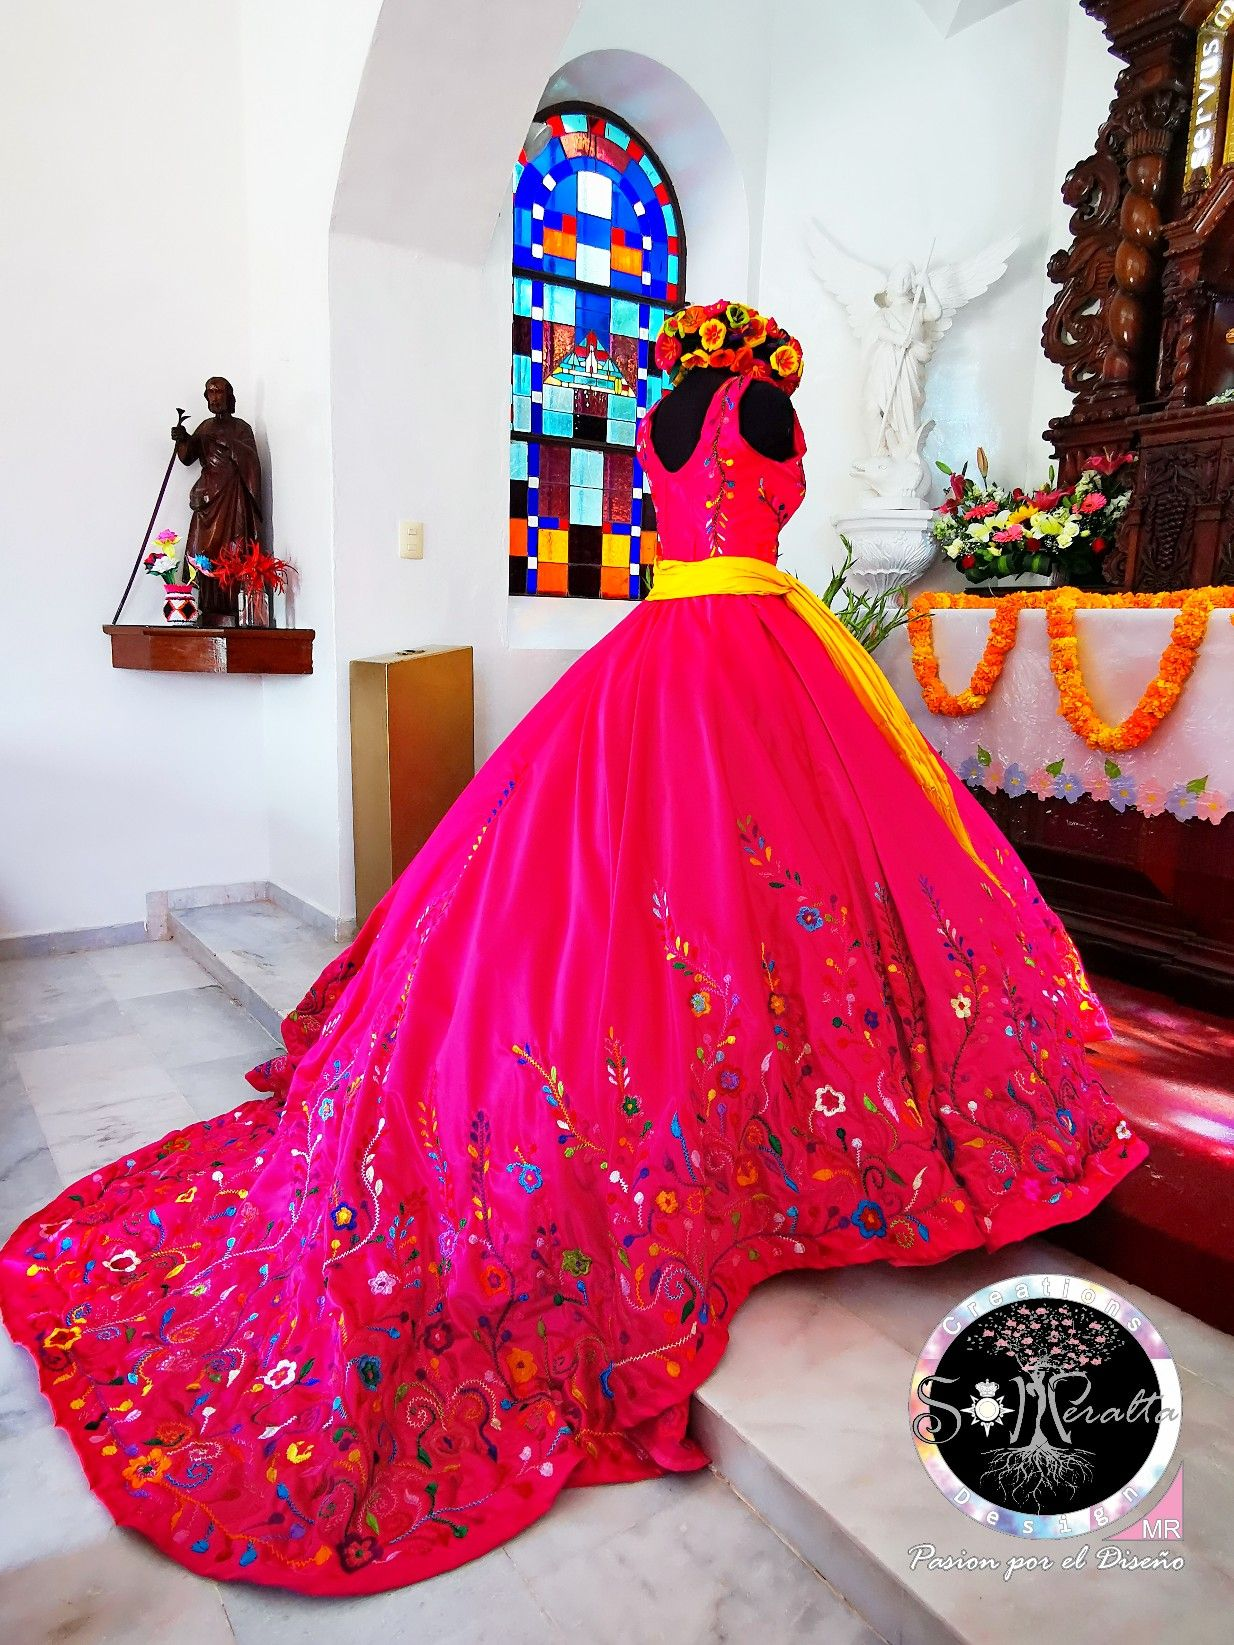 2021 quinceanera dress,quinceanera dress with train,quinceanera dress western theme,mexico themed quinceanera dress,quinceanera dress from mexico city,hot pink quinceanera dress,modern mexican quinceanera dress,mexican themed quinceanera dress,